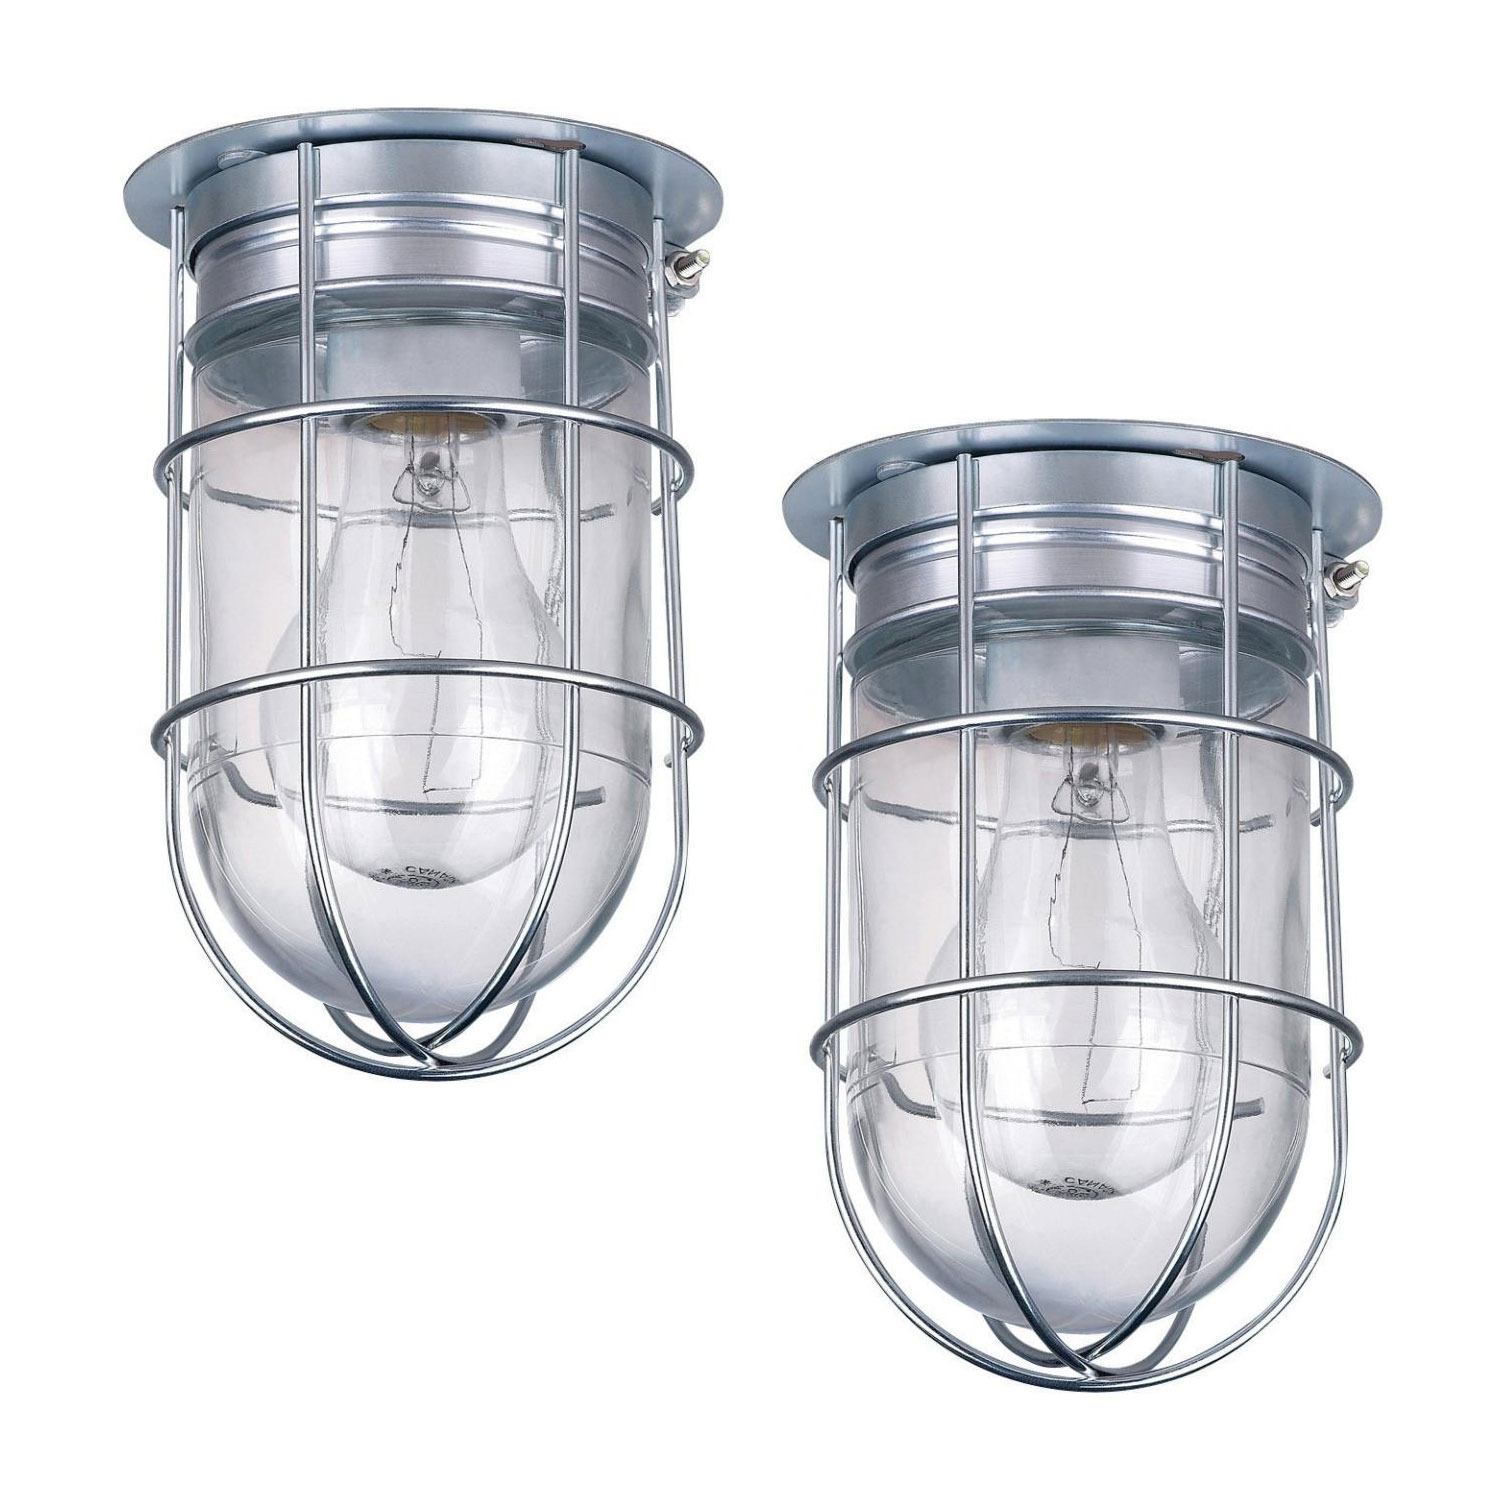 2 Pack of Outdoor Caged Lights Barn Ceiling Exterior Wall All Weather with Cage